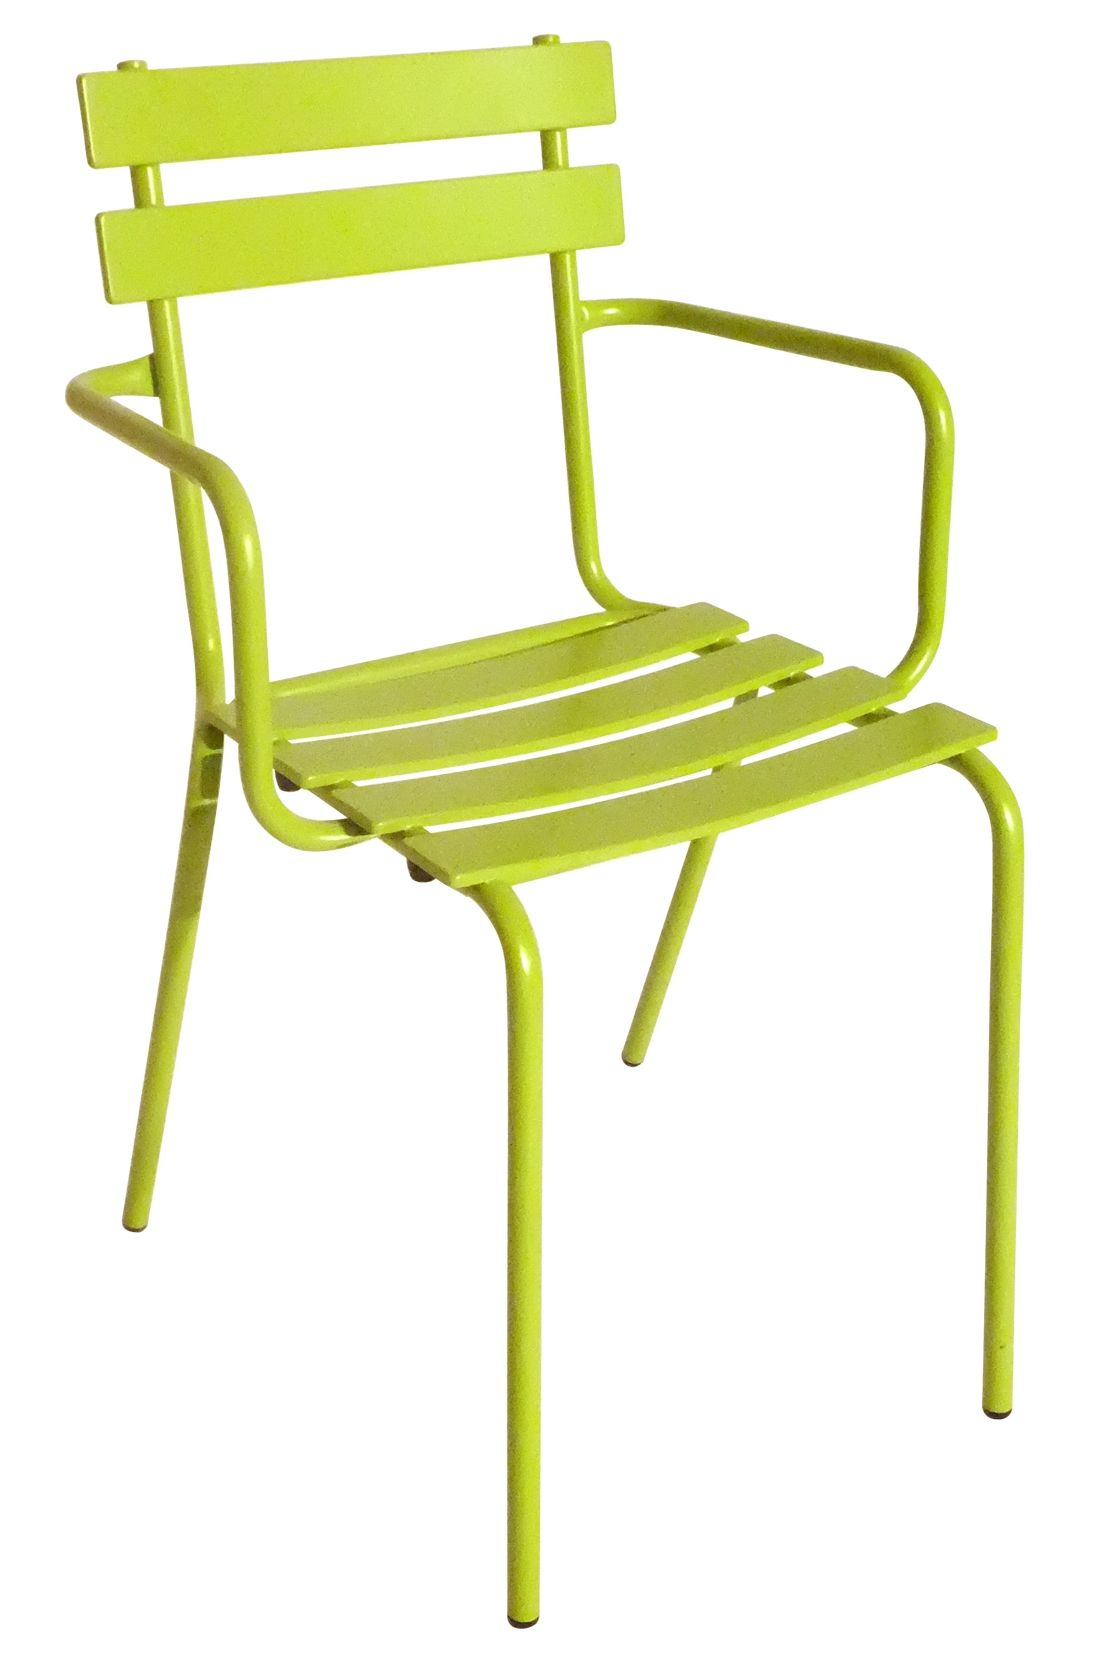 Chaise Exterieur Restaurant Bridge Eden Vert Granny Usage Interieur Exterieur Chaise Chair